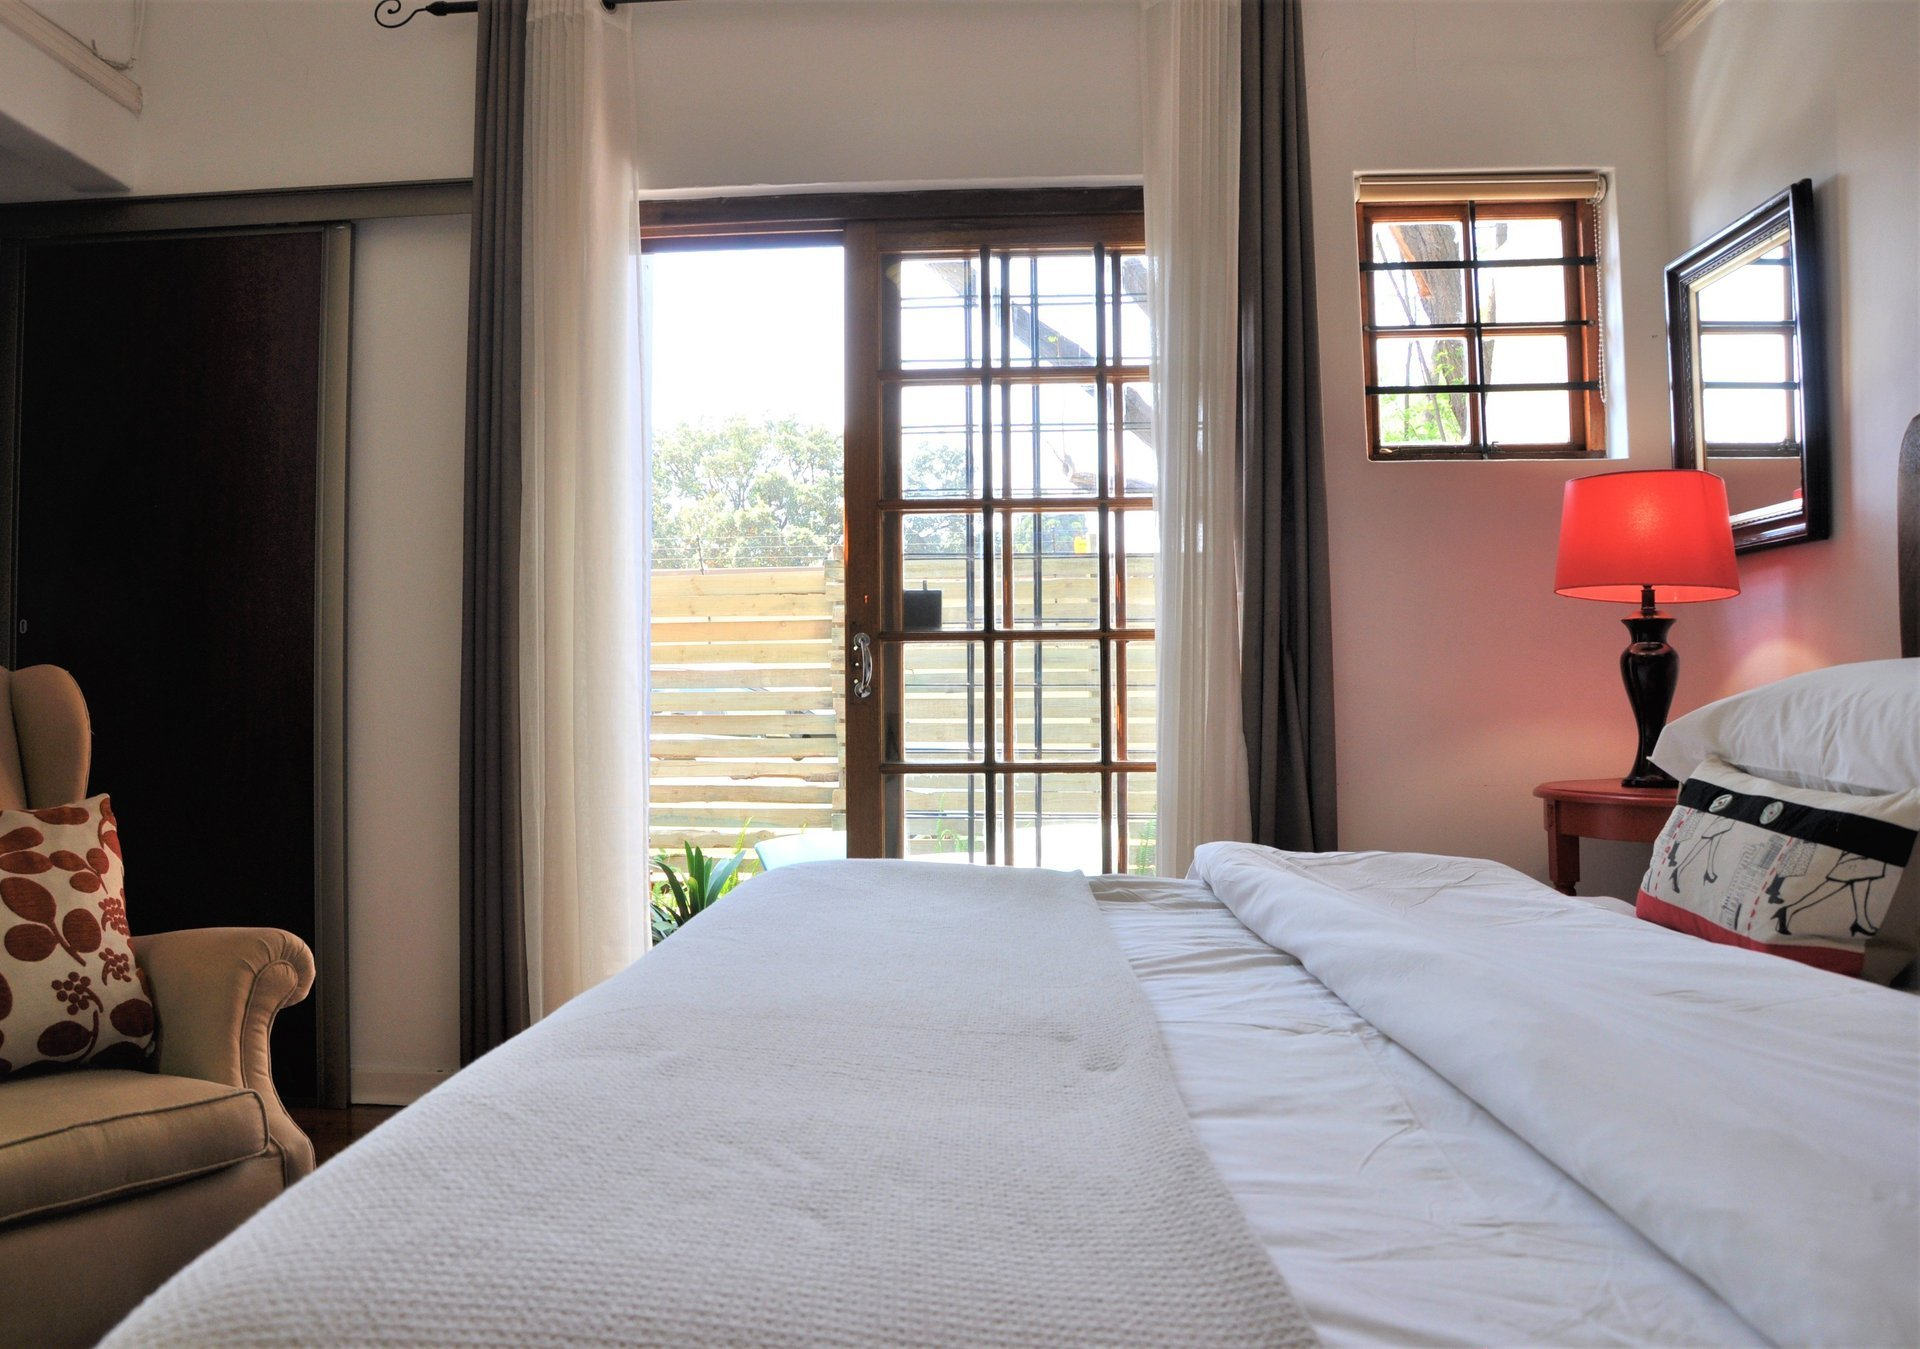 self catering rooms | guest house in melville | cottage accommodation